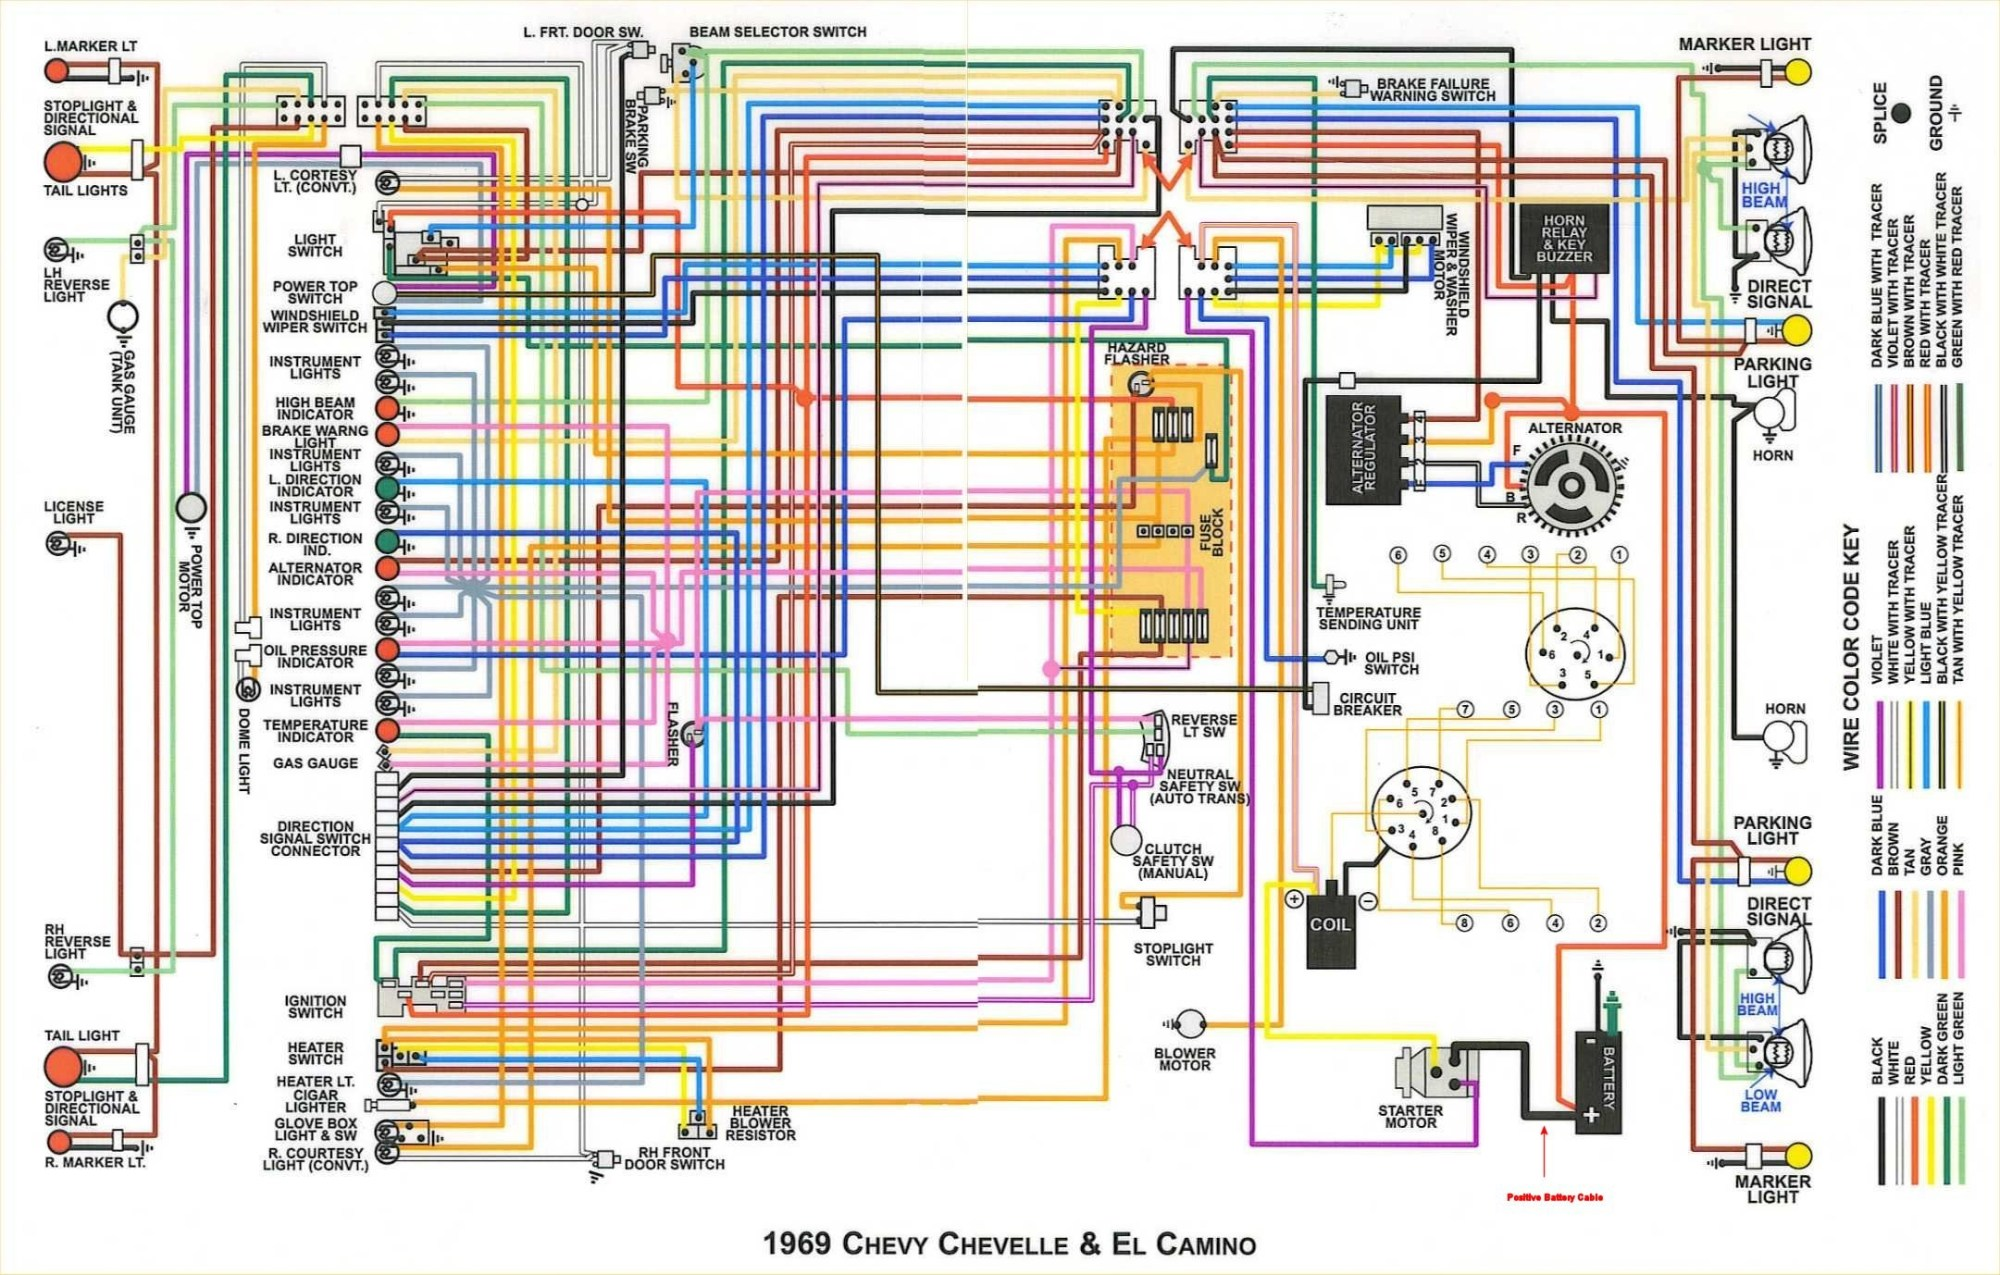 hight resolution of wiring diagram 69 chevelle 1 wire alternator wiring diagram used 1966 chevelle dash wiring harness free